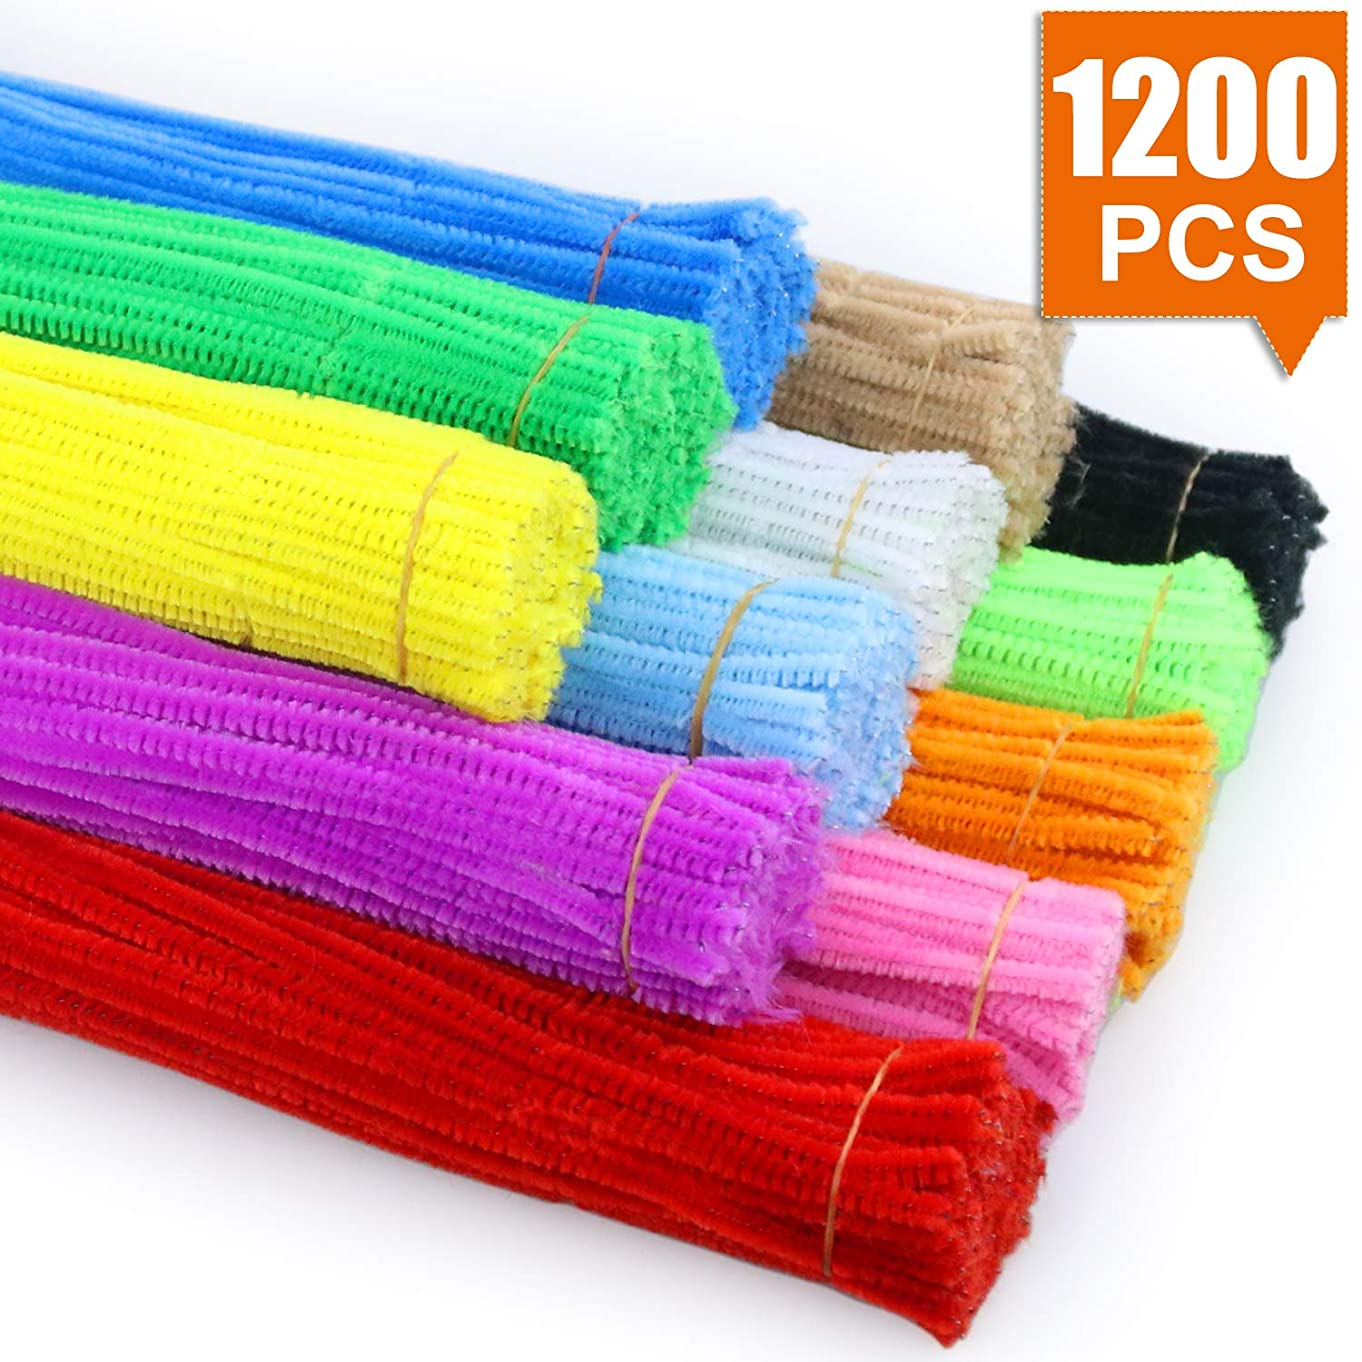 NEOACT Chenille Stems/Pipe Cleaners 1200-Piece, 12 Vibrant Colors, 12 Inch x 6mm